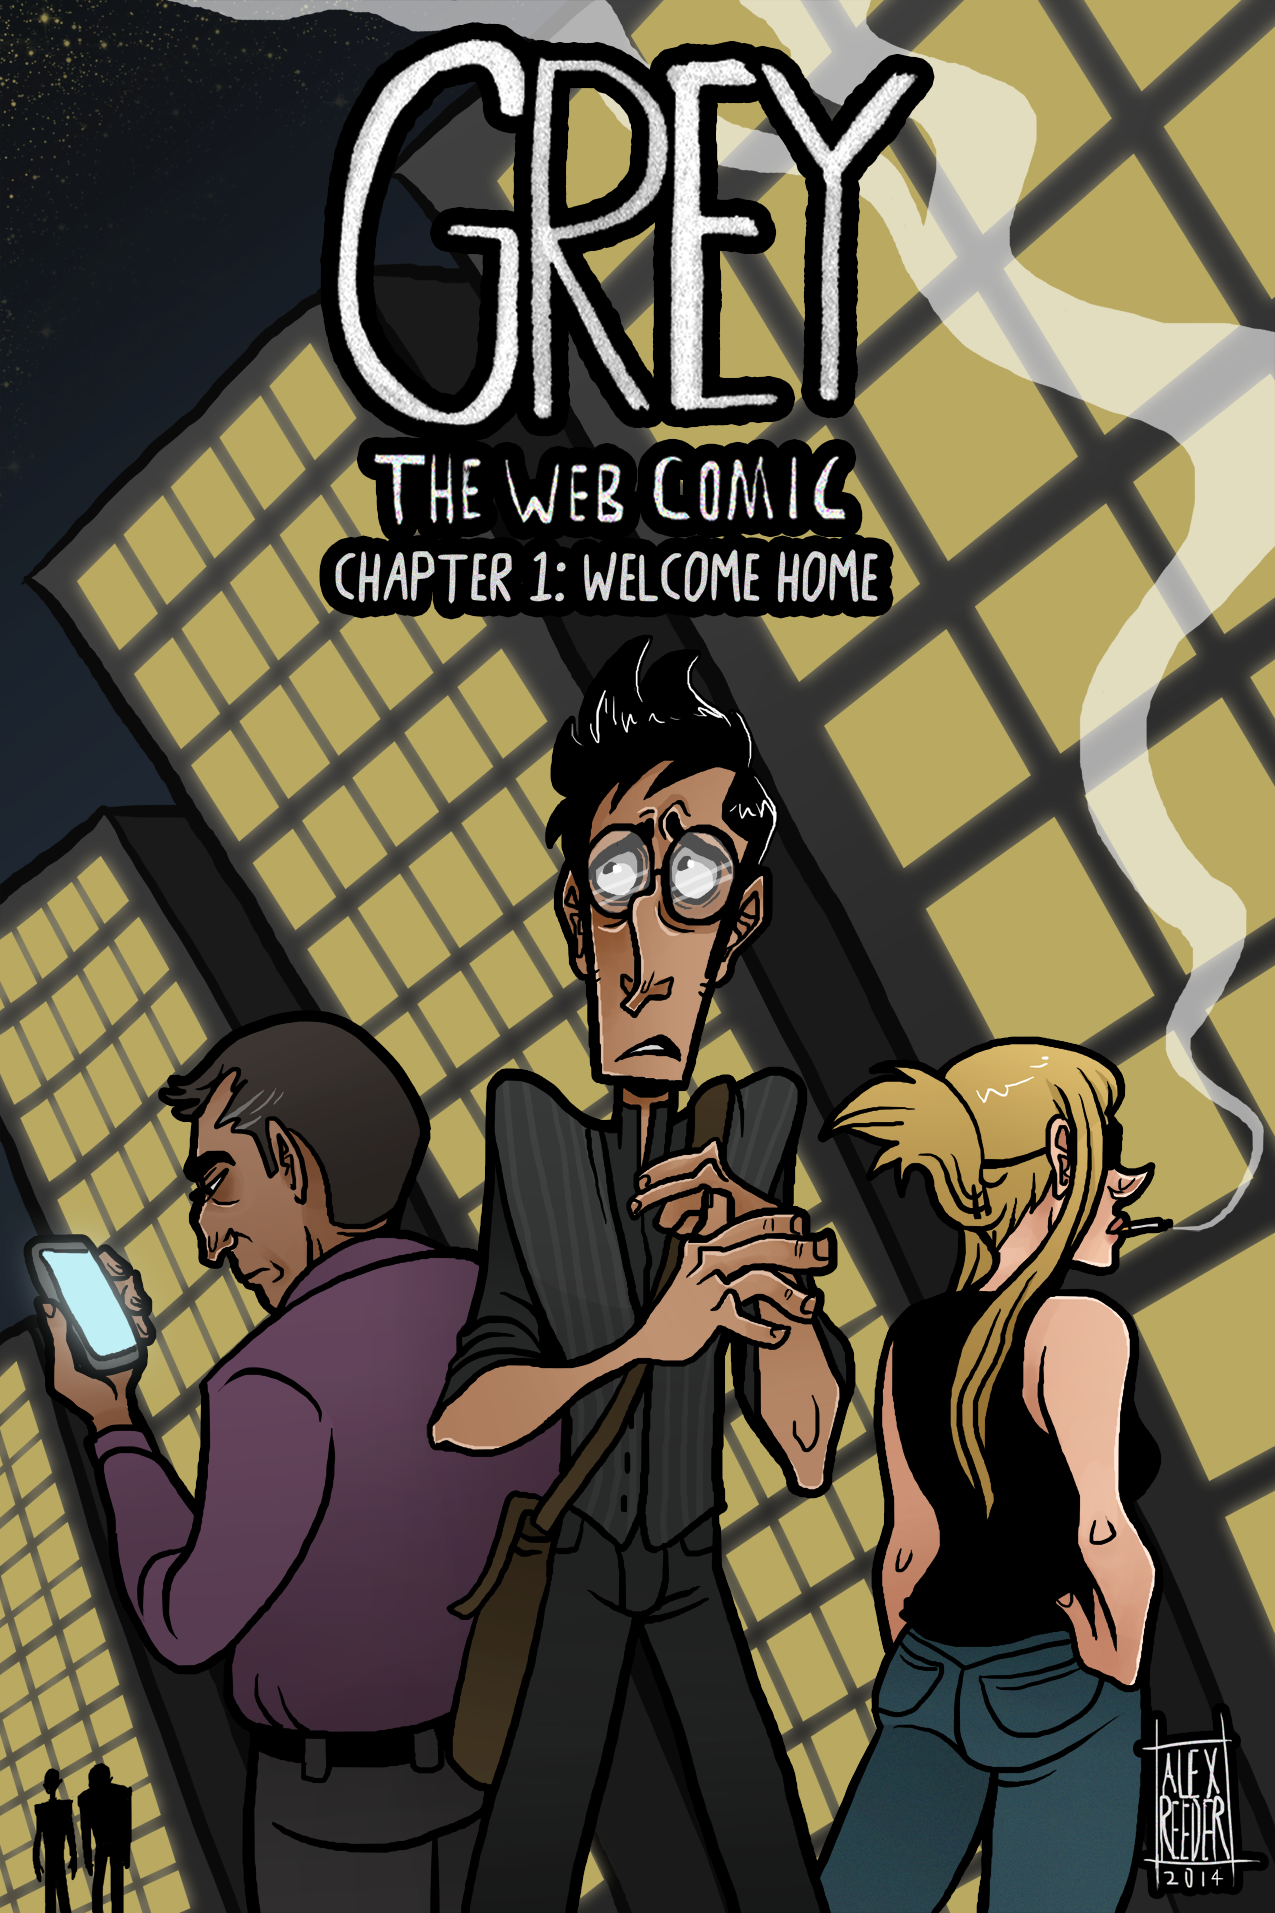 Chapter 1: Welcome Home